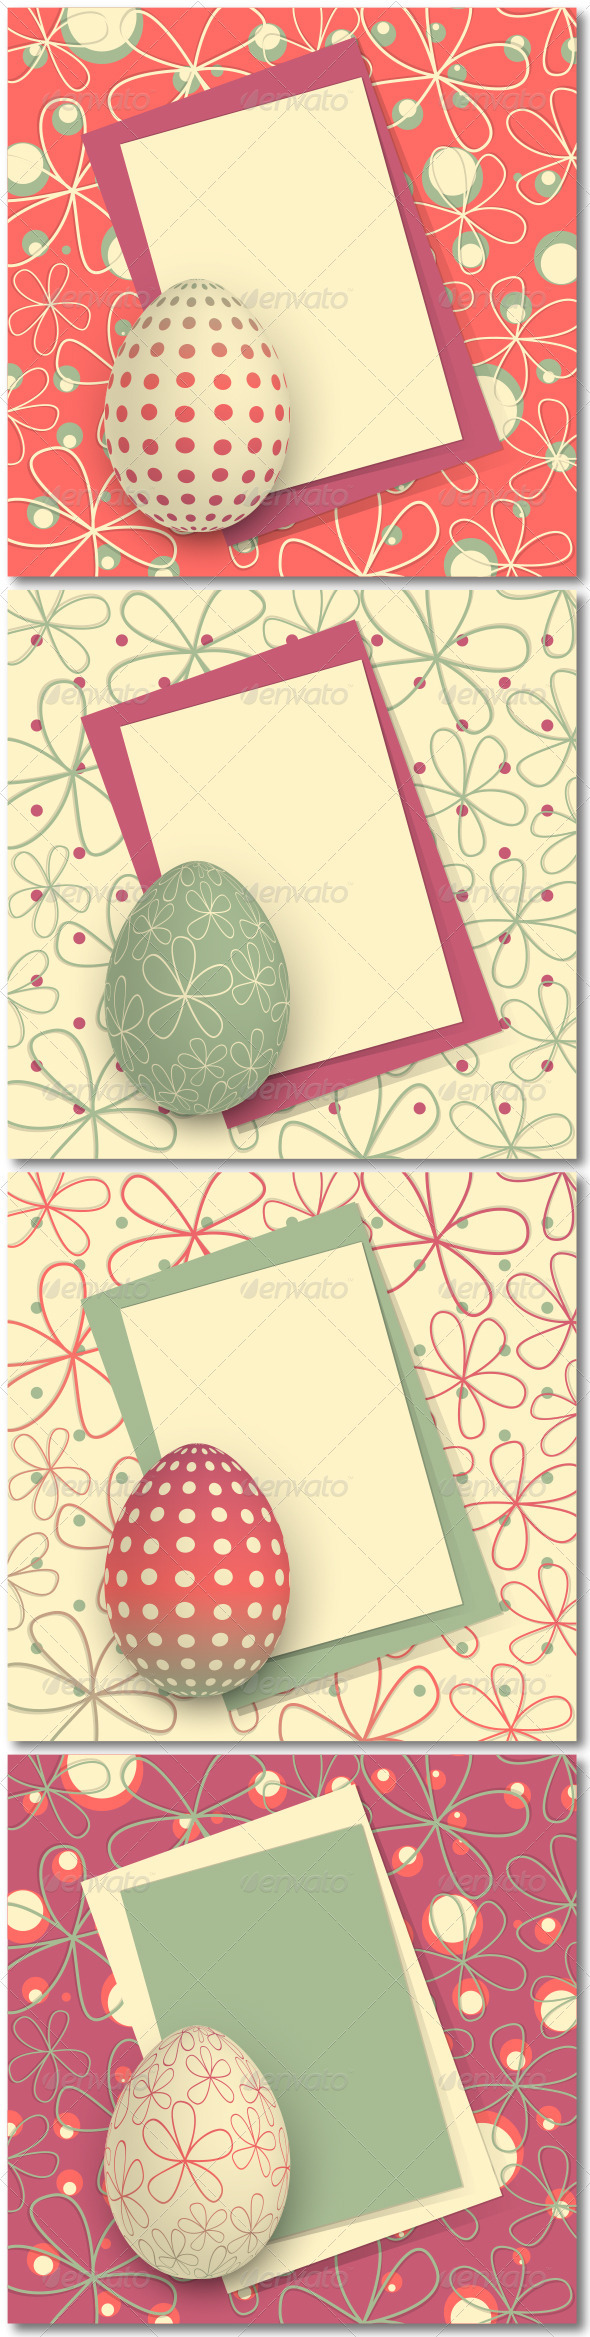 GraphicRiver Four Easter Cards 3950335